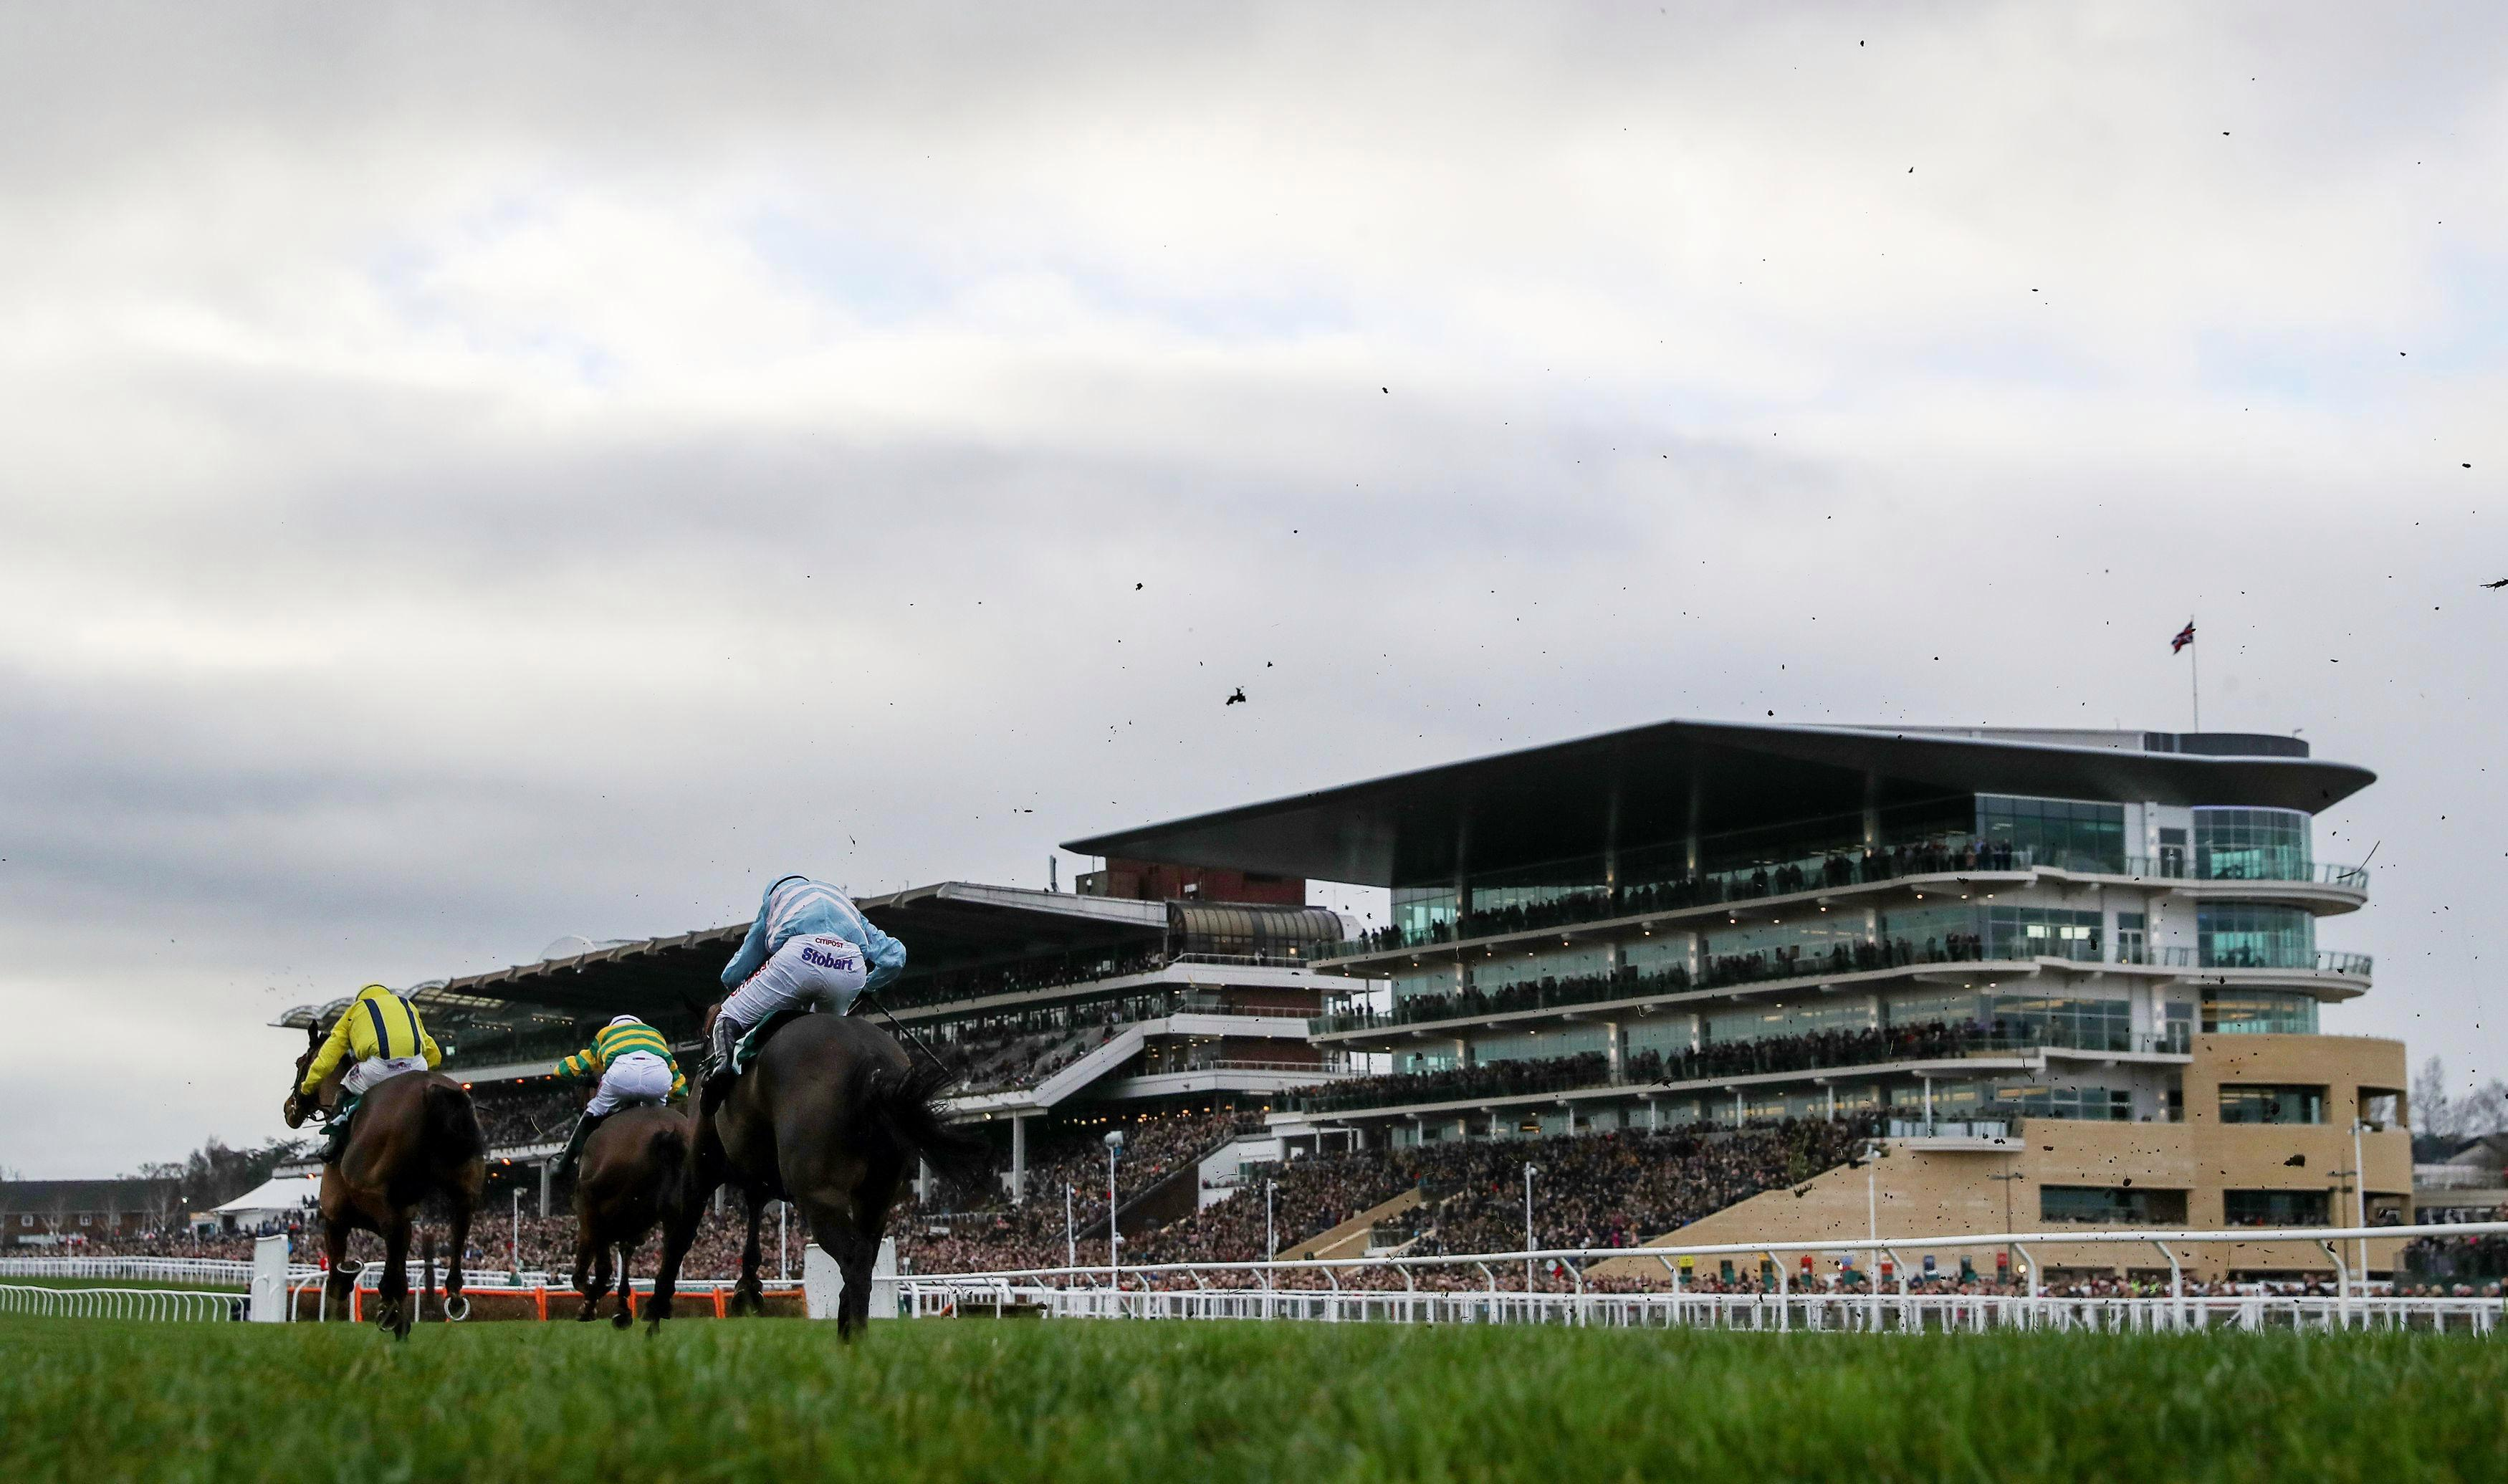 Today's Wincanton racing results: Full results from